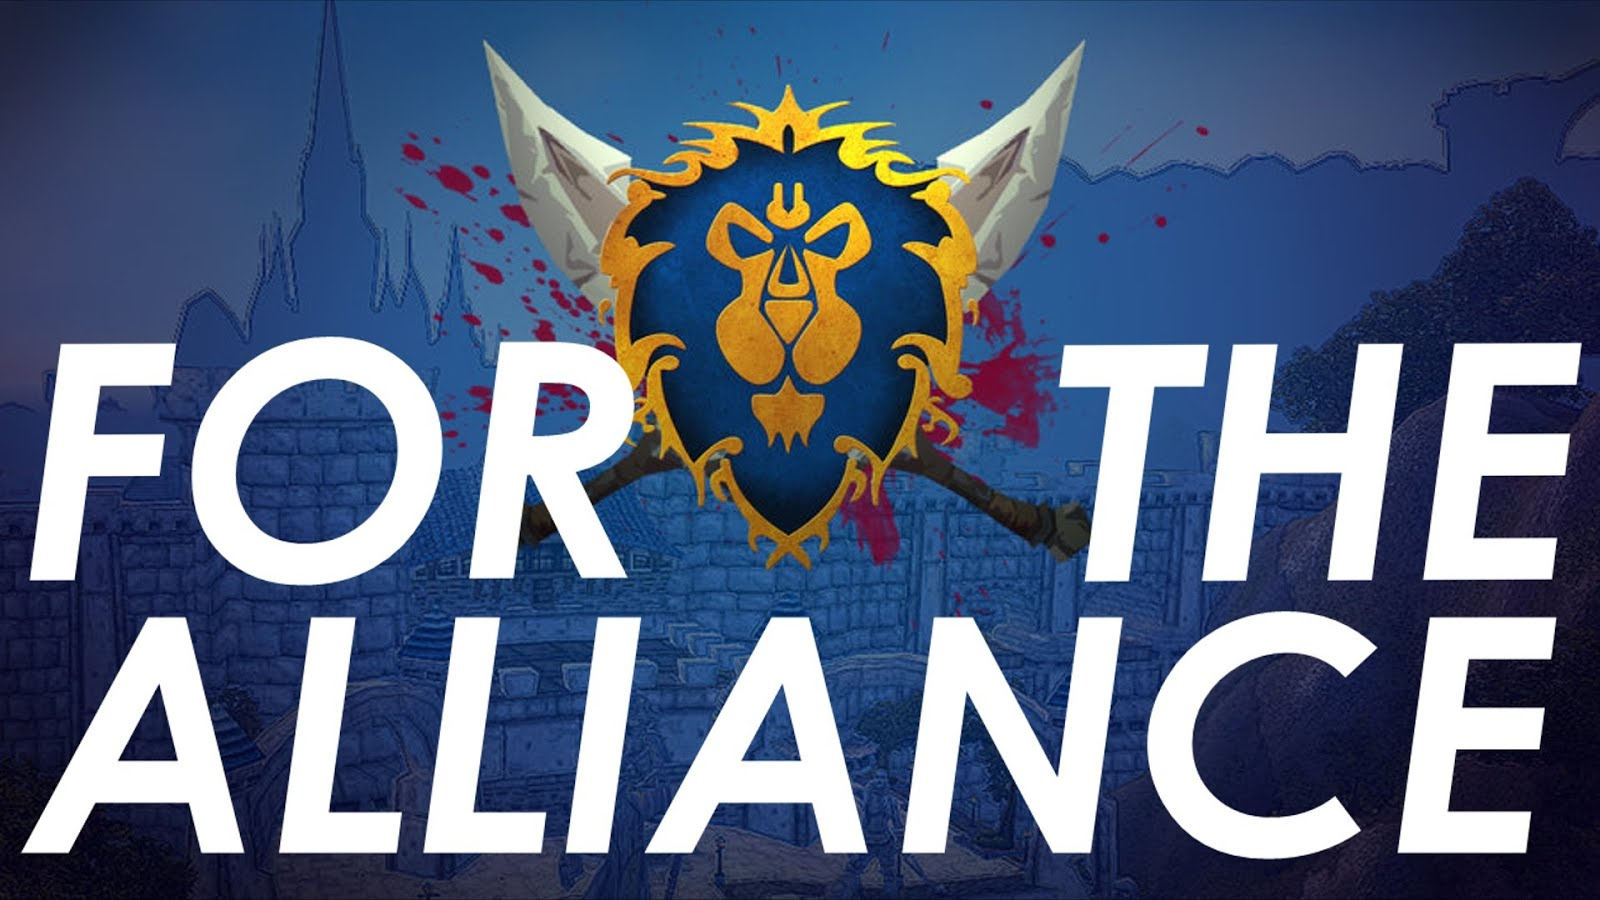 United with the Alliance